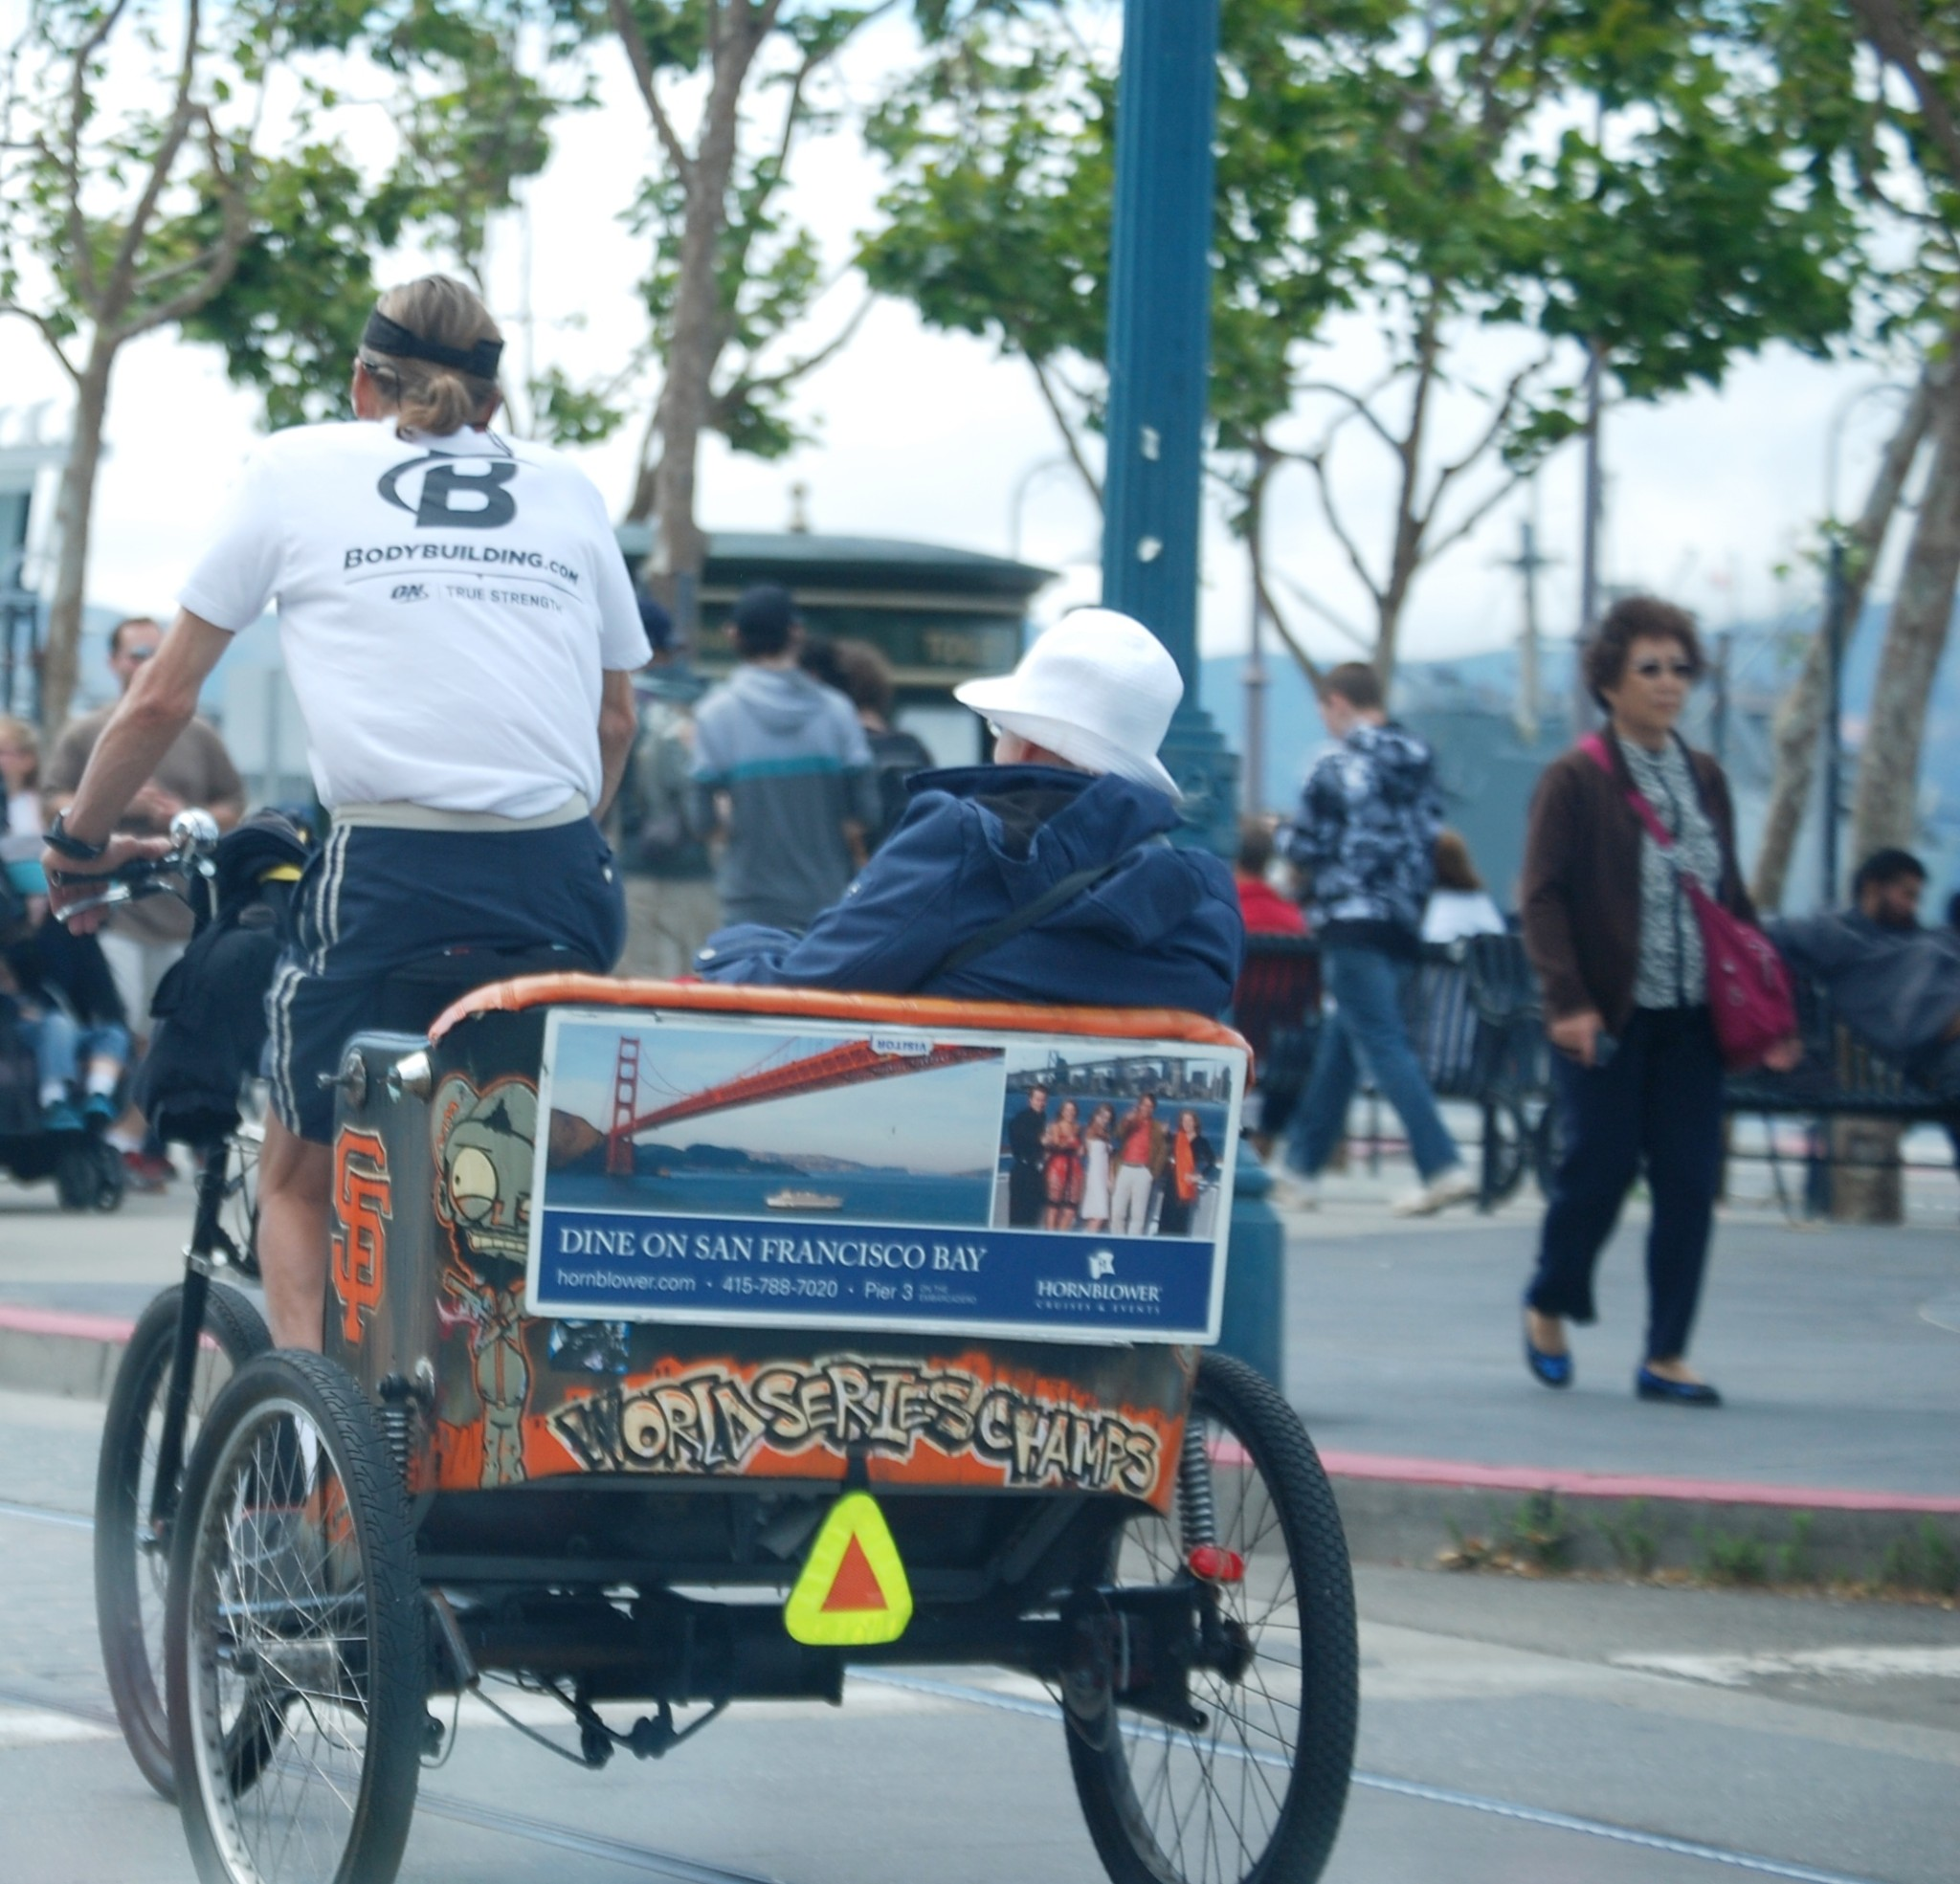 Bike Rickshaws in Fisherman's Wharf